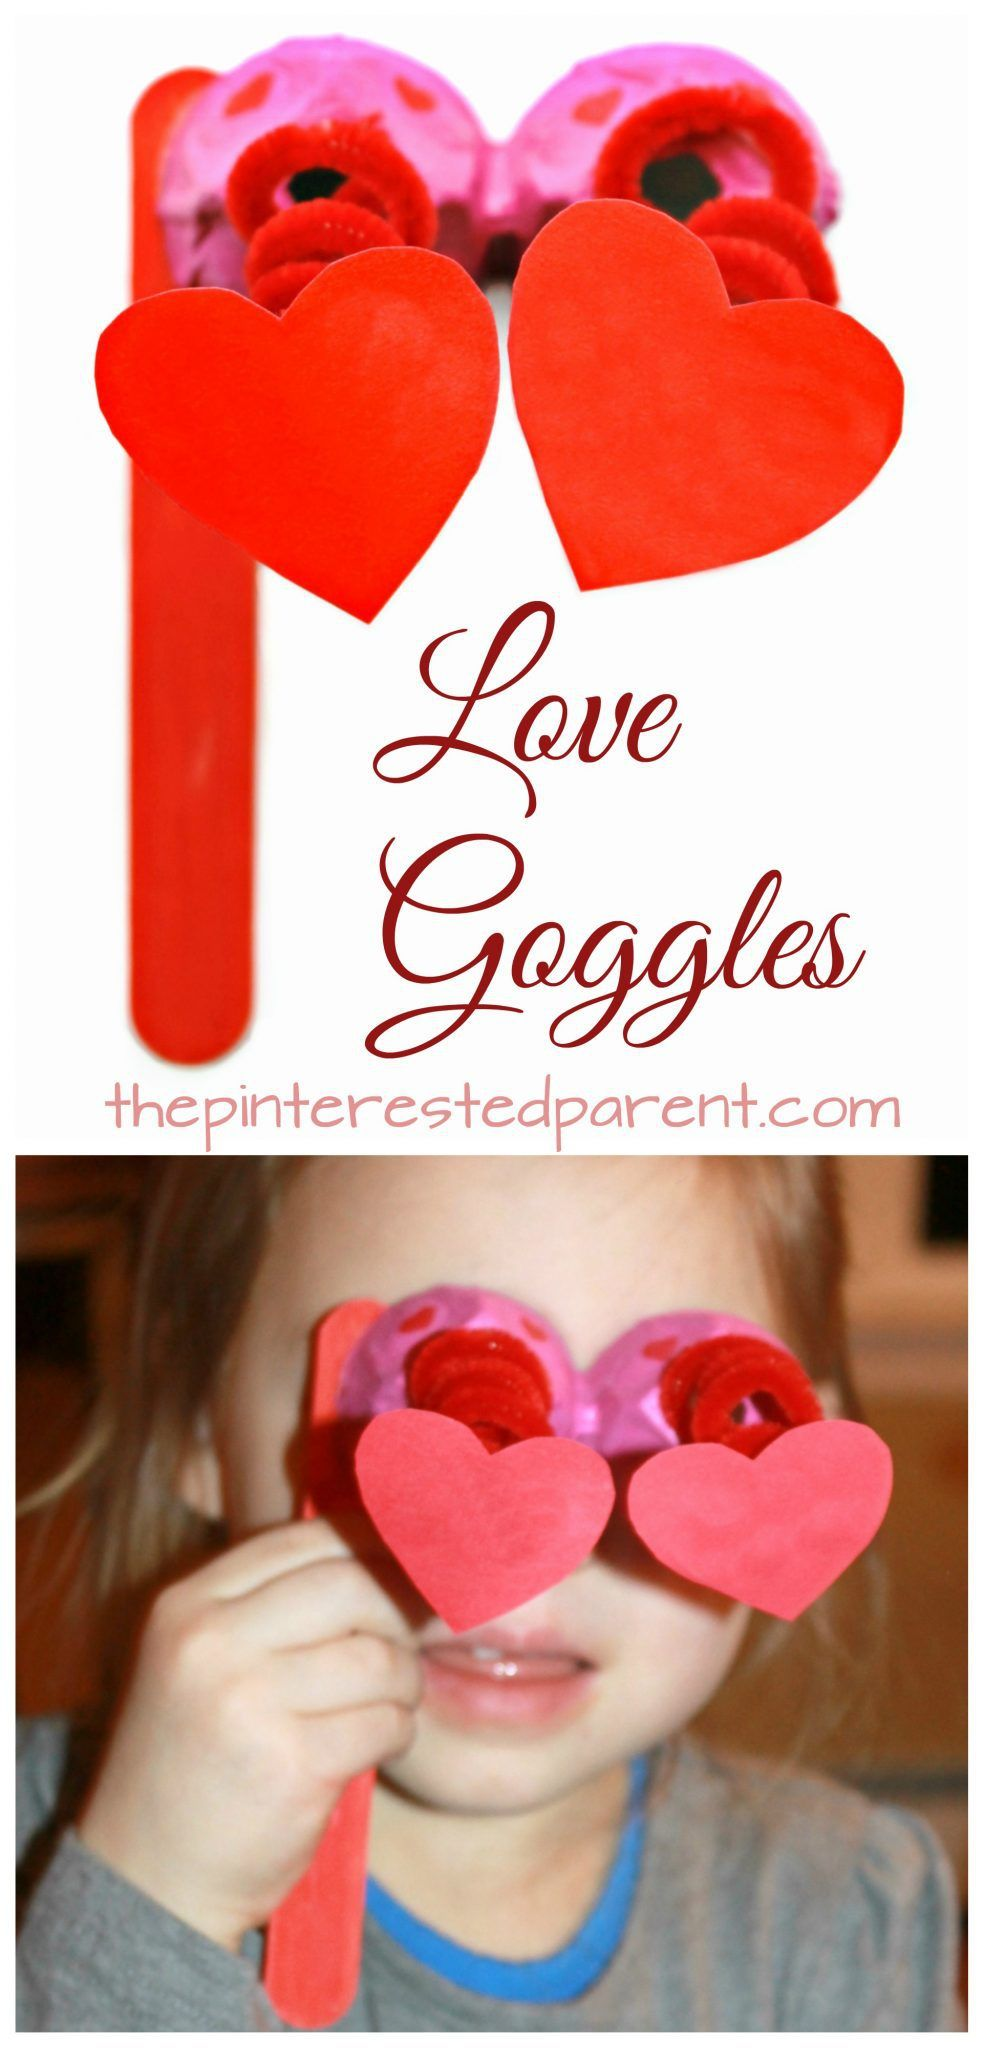 springy love goggles made out of egg carton pipe cleaner valentines day arts crafts for kids - Valentines Day Arts And Crafts